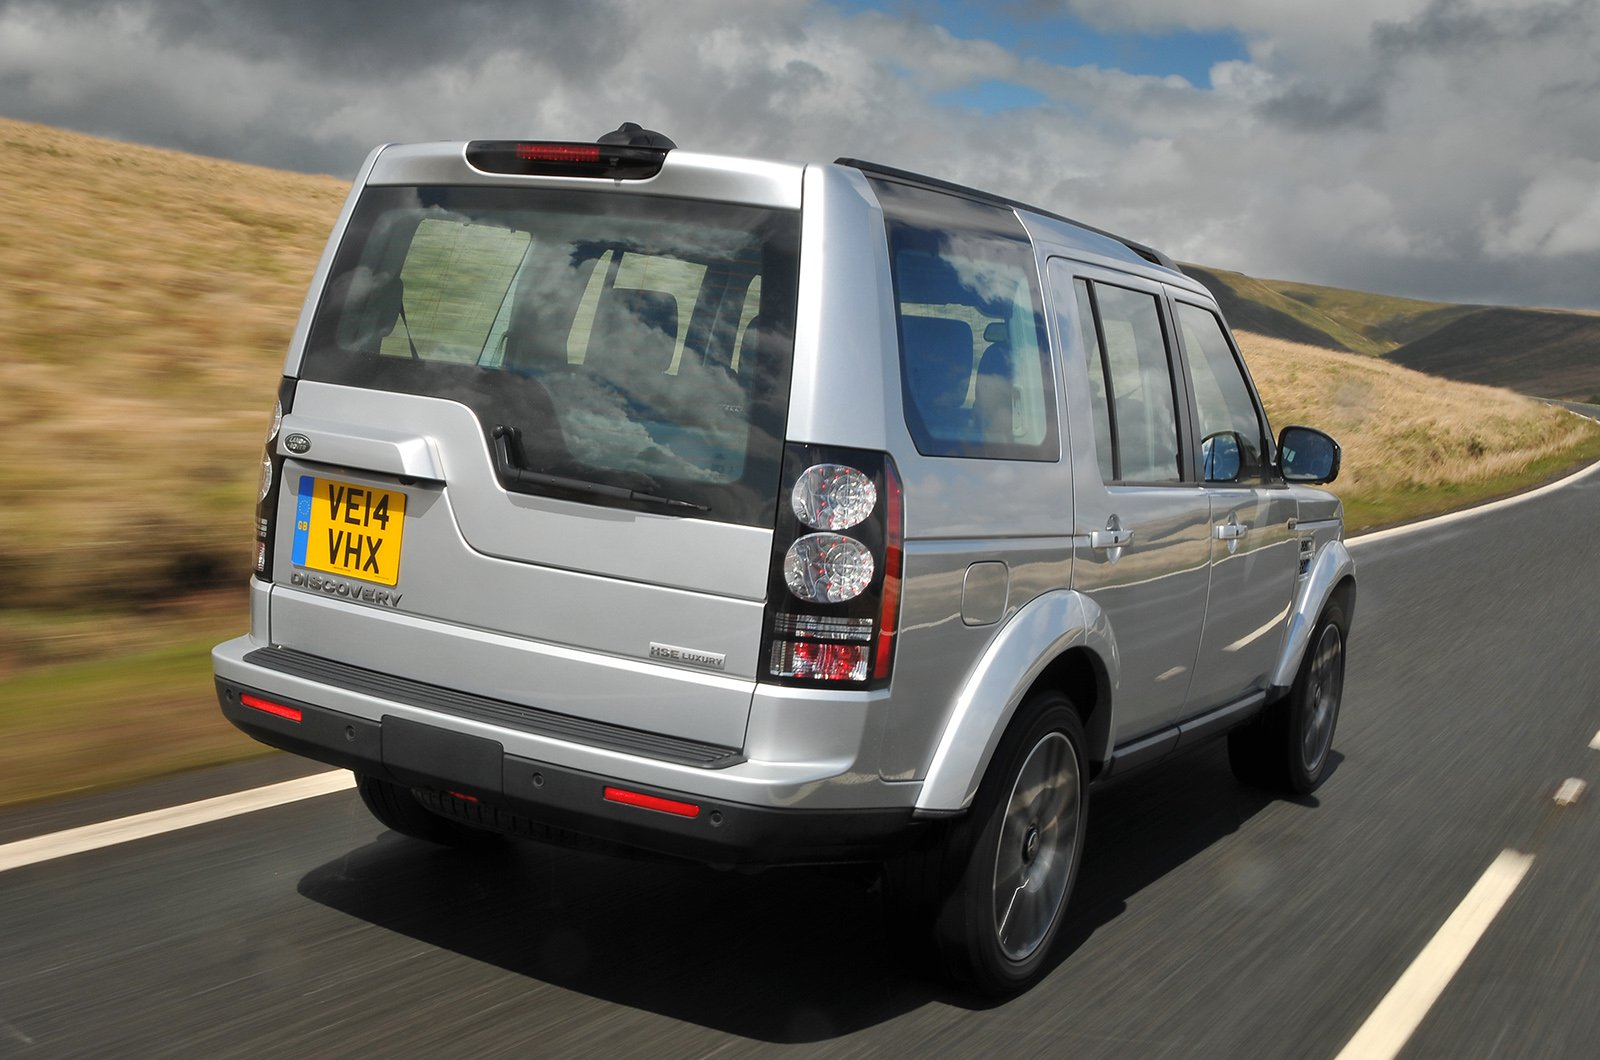 Used Land Rover Discovery rear corner